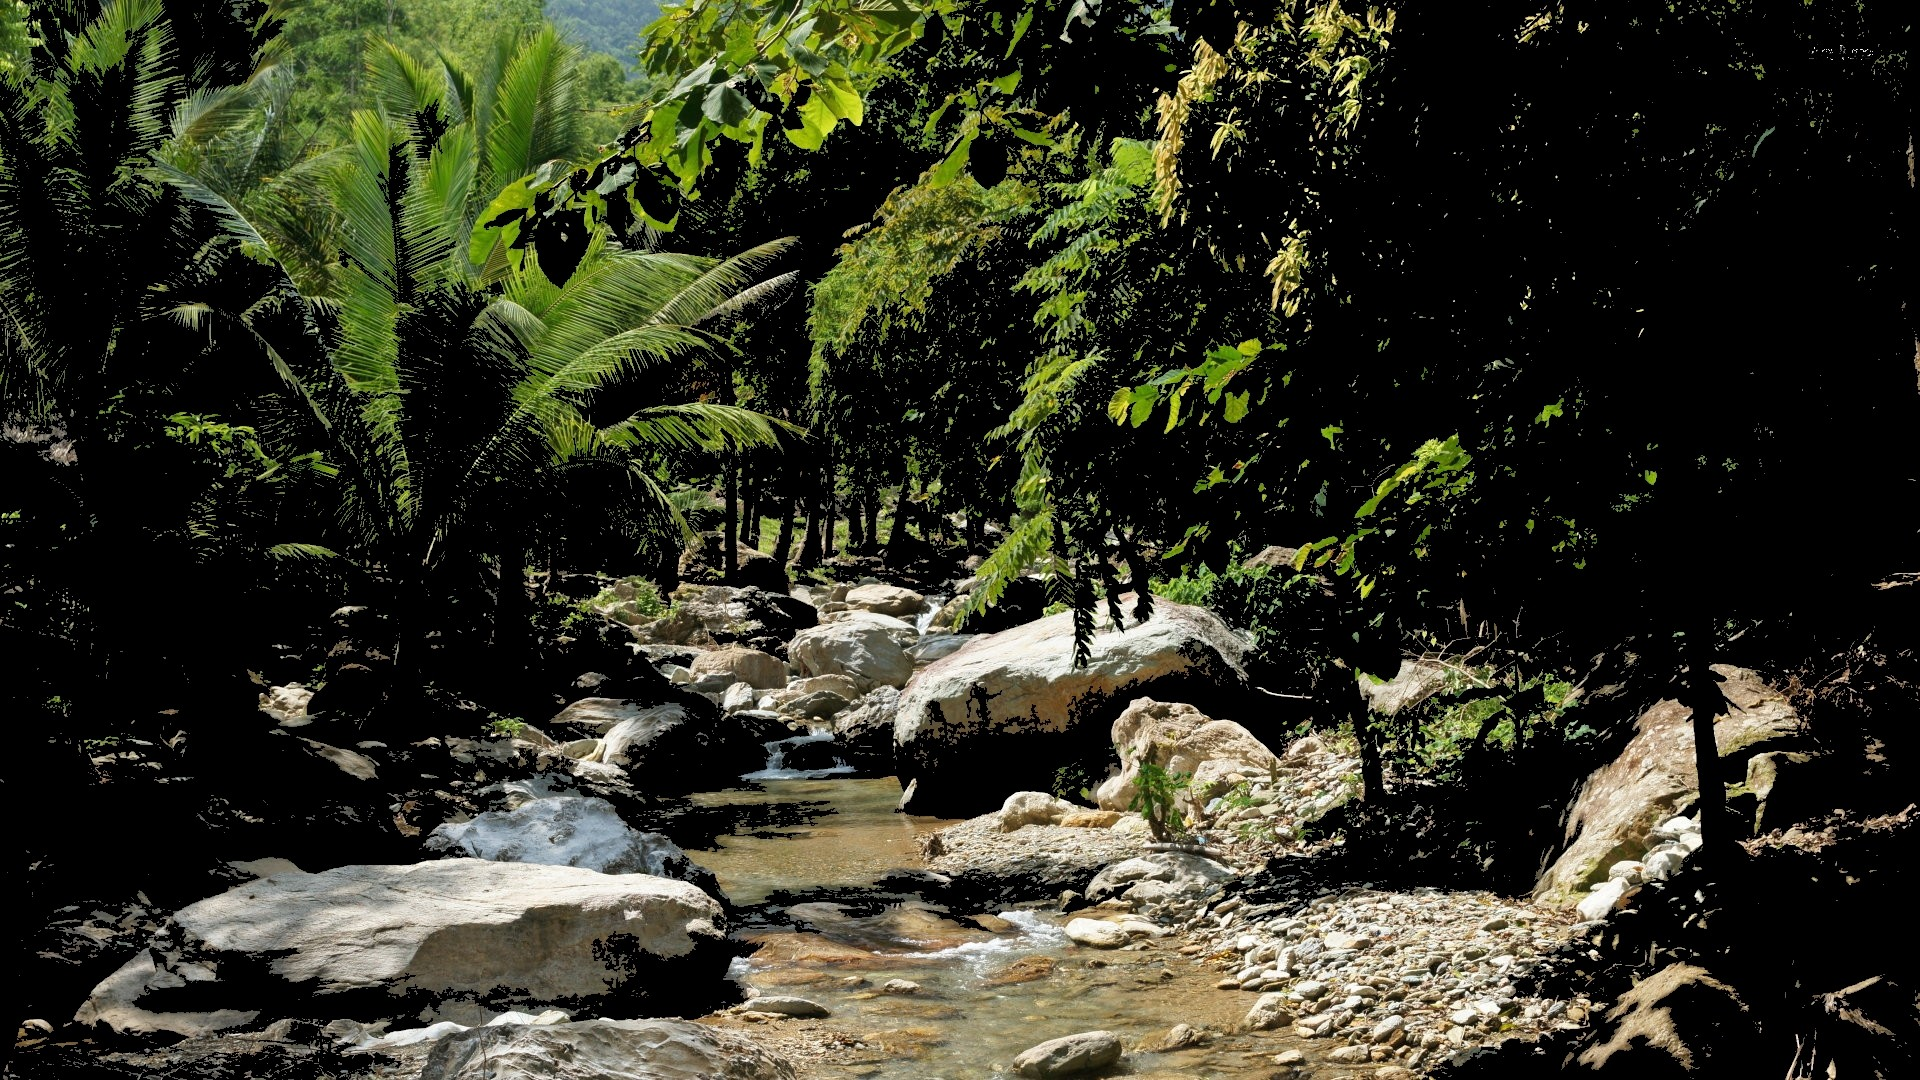 Jungle Stream Light Rock Palm Flowing Water Trees Nature - Stone With Leaves Jungle , HD Wallpaper & Backgrounds